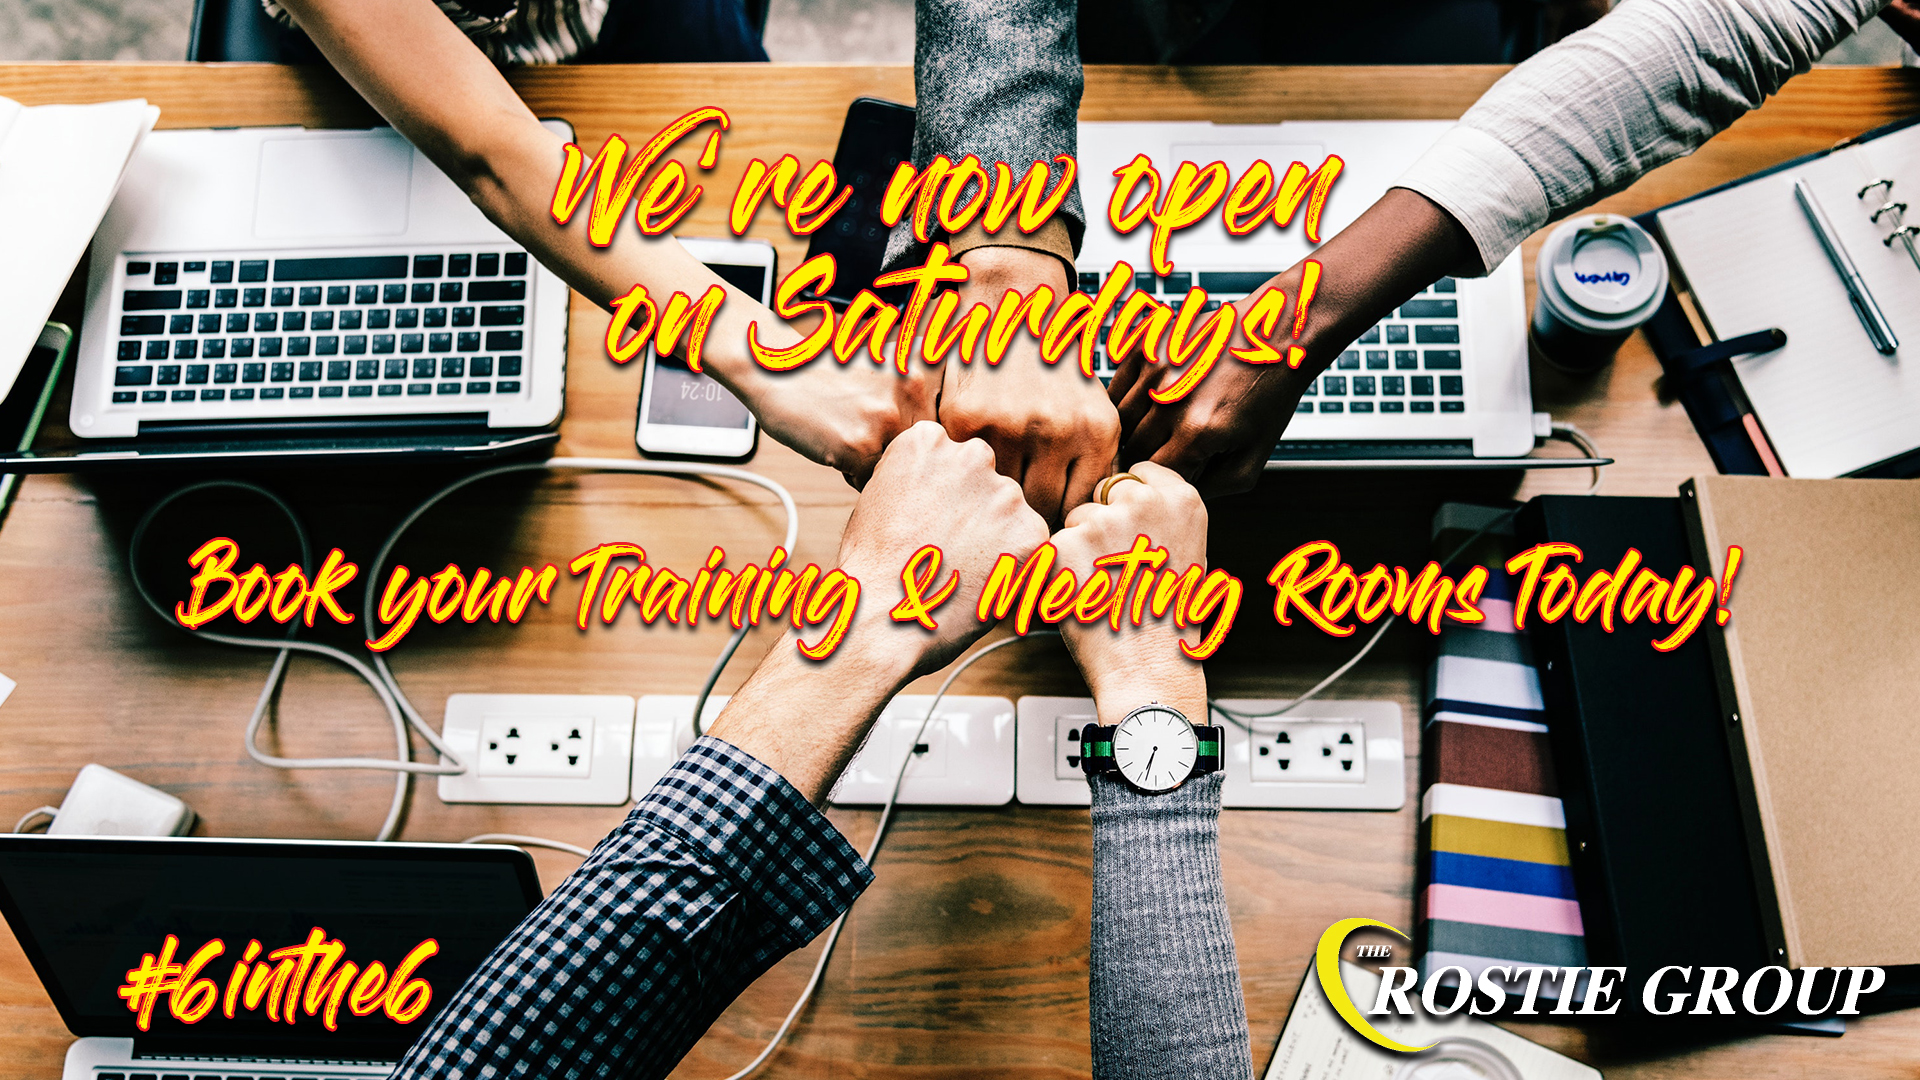 Rostie Group Meeting Rooms Open Saturdays